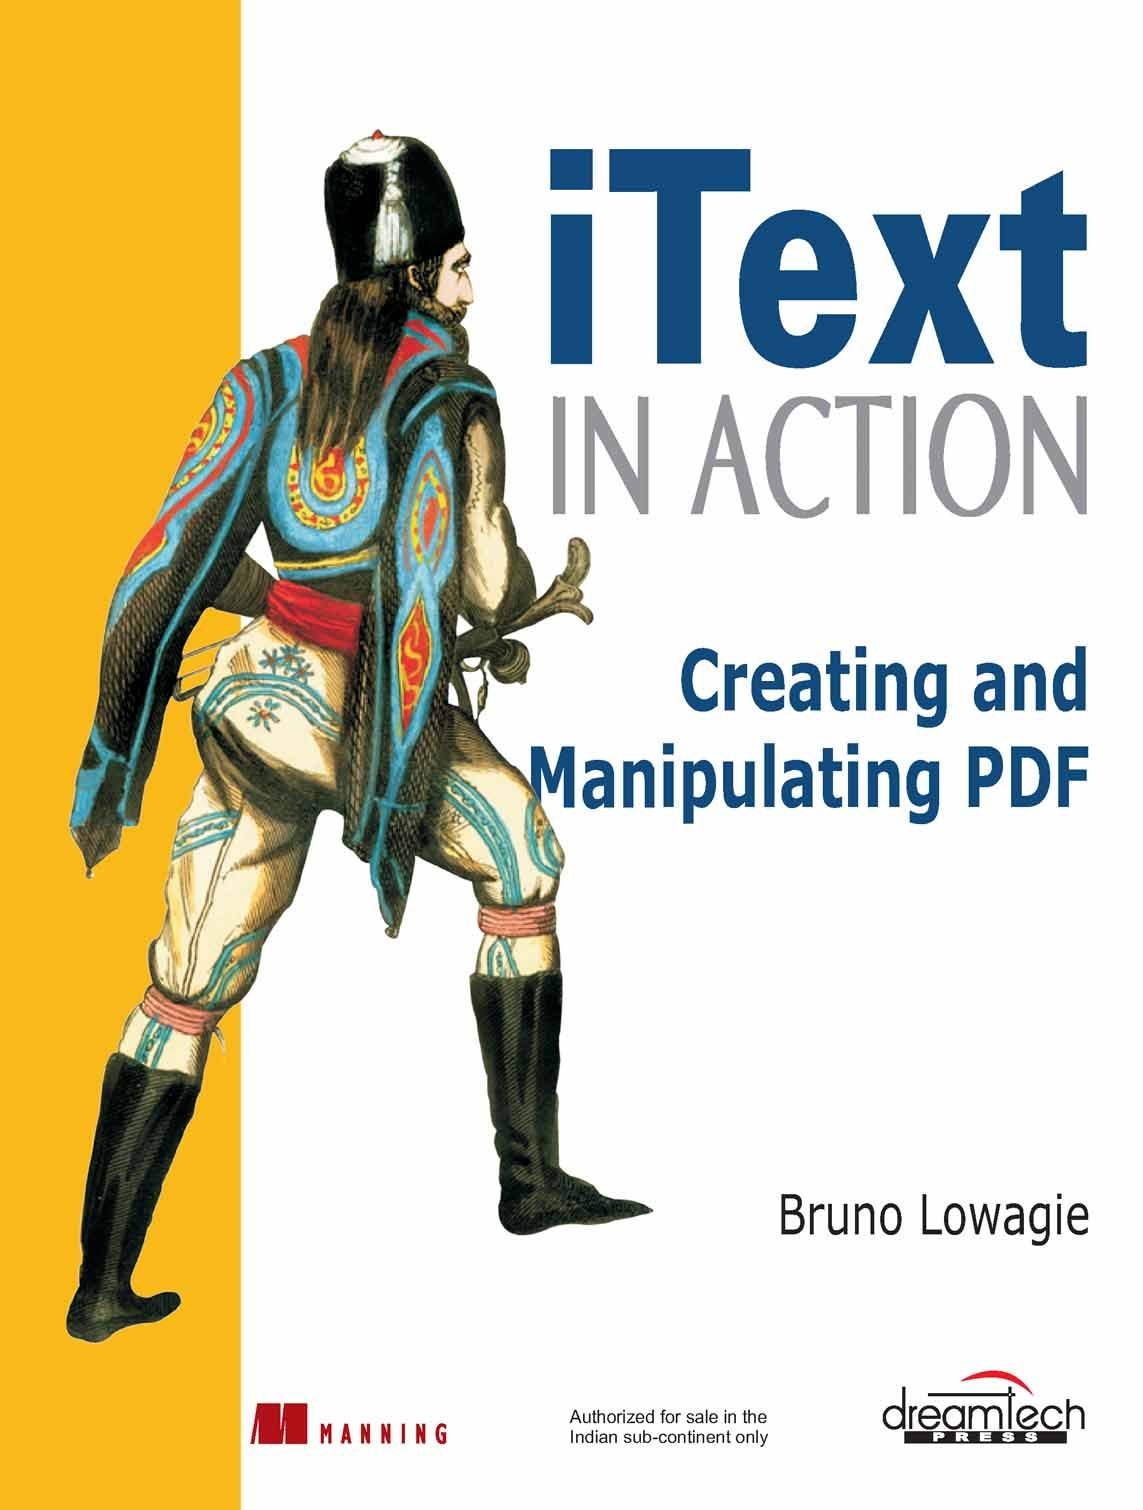 Buy iText in Action: Creating and Manipulating PDF Book